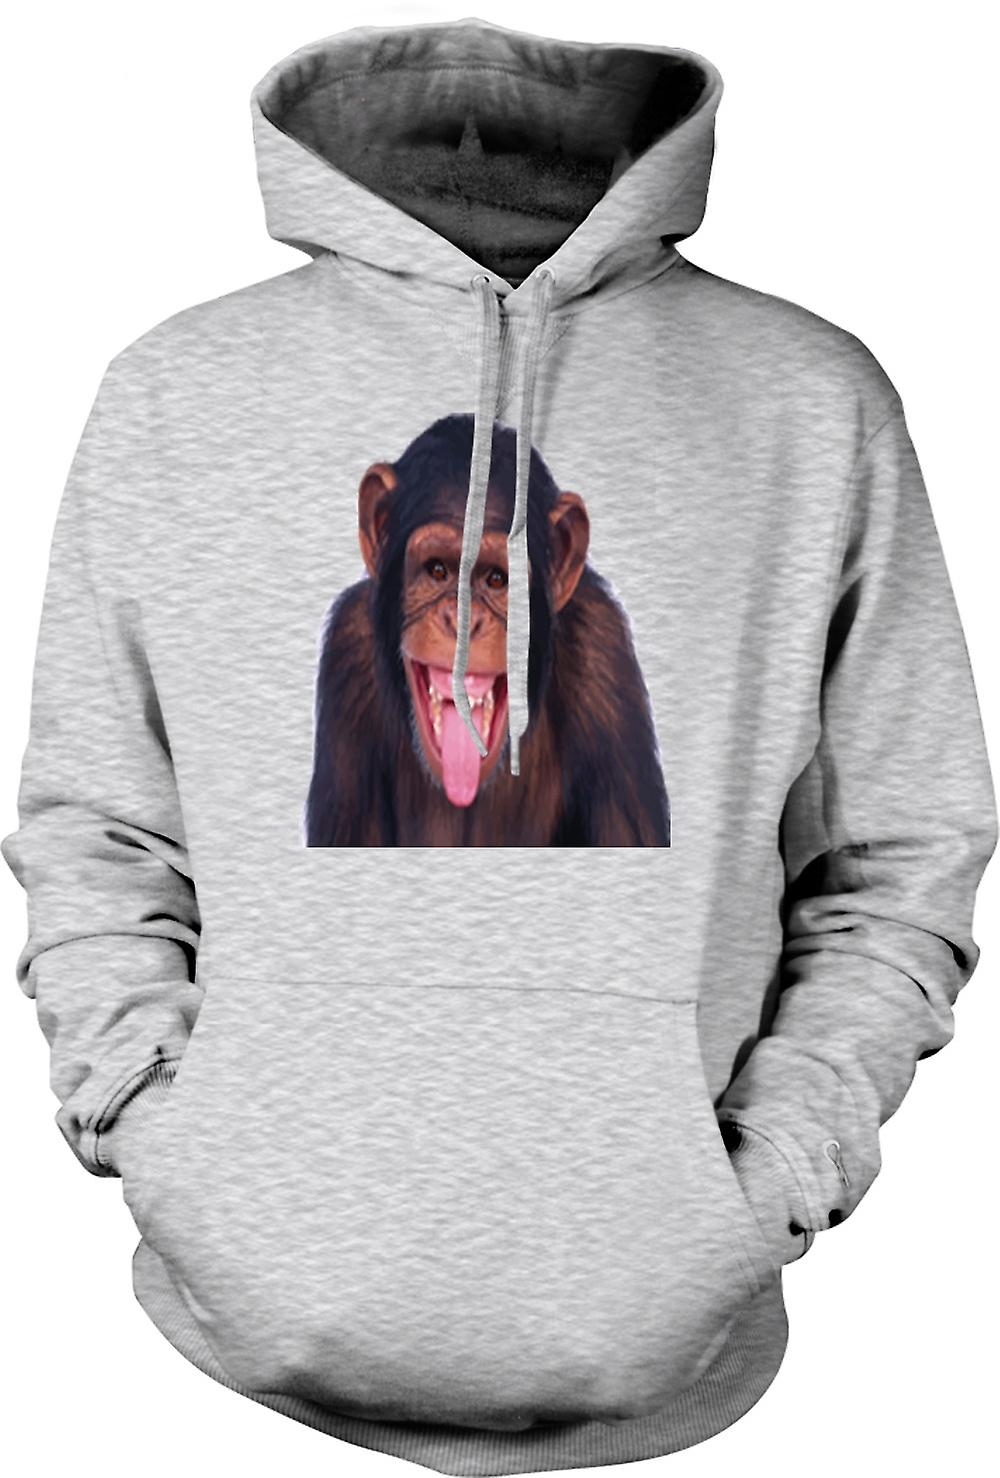 Mens Hoodie - Cheeky Chimp Funny Face